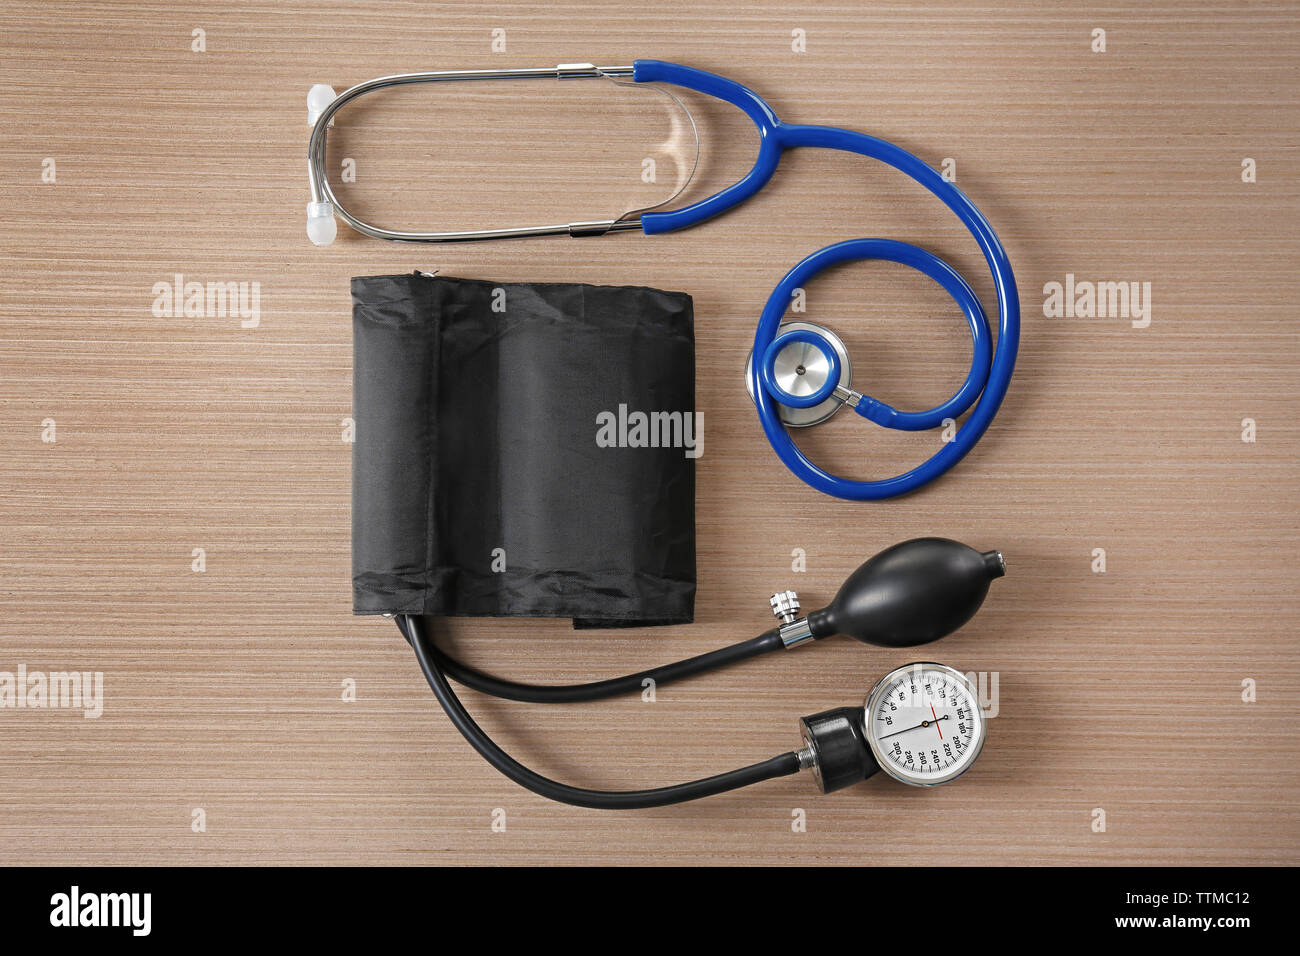 Stethoscope and tonometer on wooden table - Stock Image